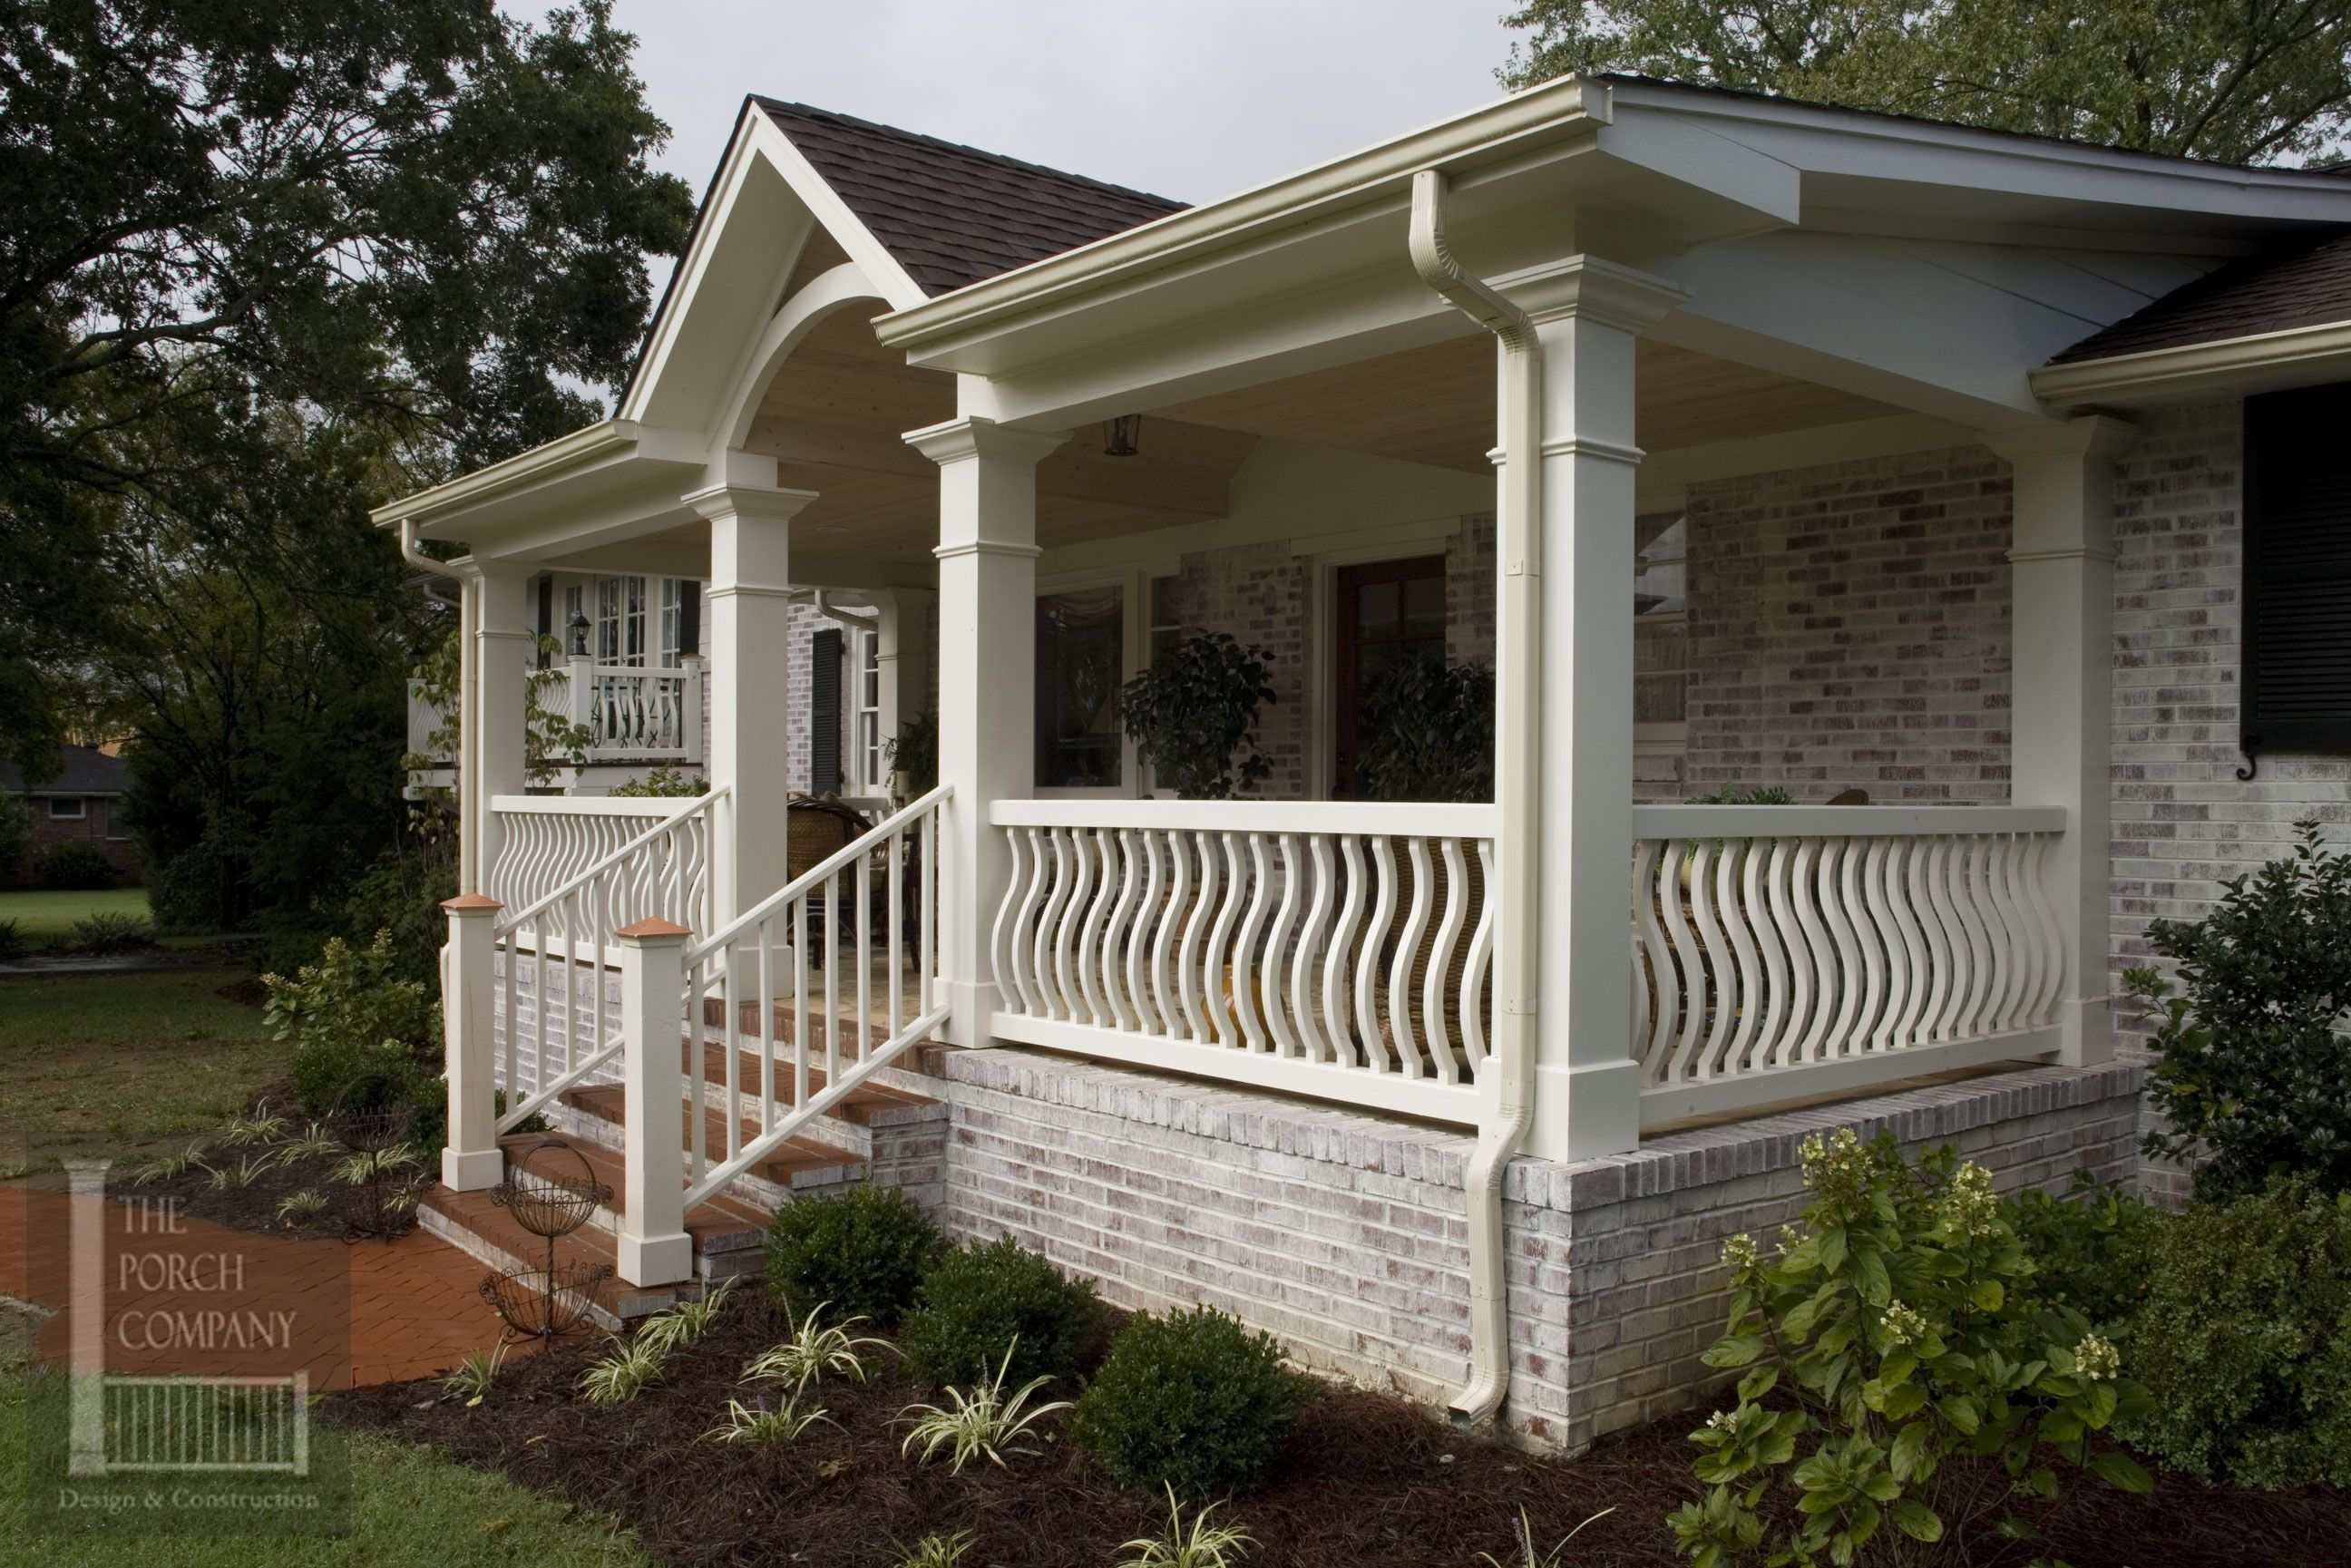 for kits hung together garden wooden walls at systems railing along also rousing cabin aluminum outdoor deck trendy home porch state rails panel window exterior dashing with rustic decor ideas log